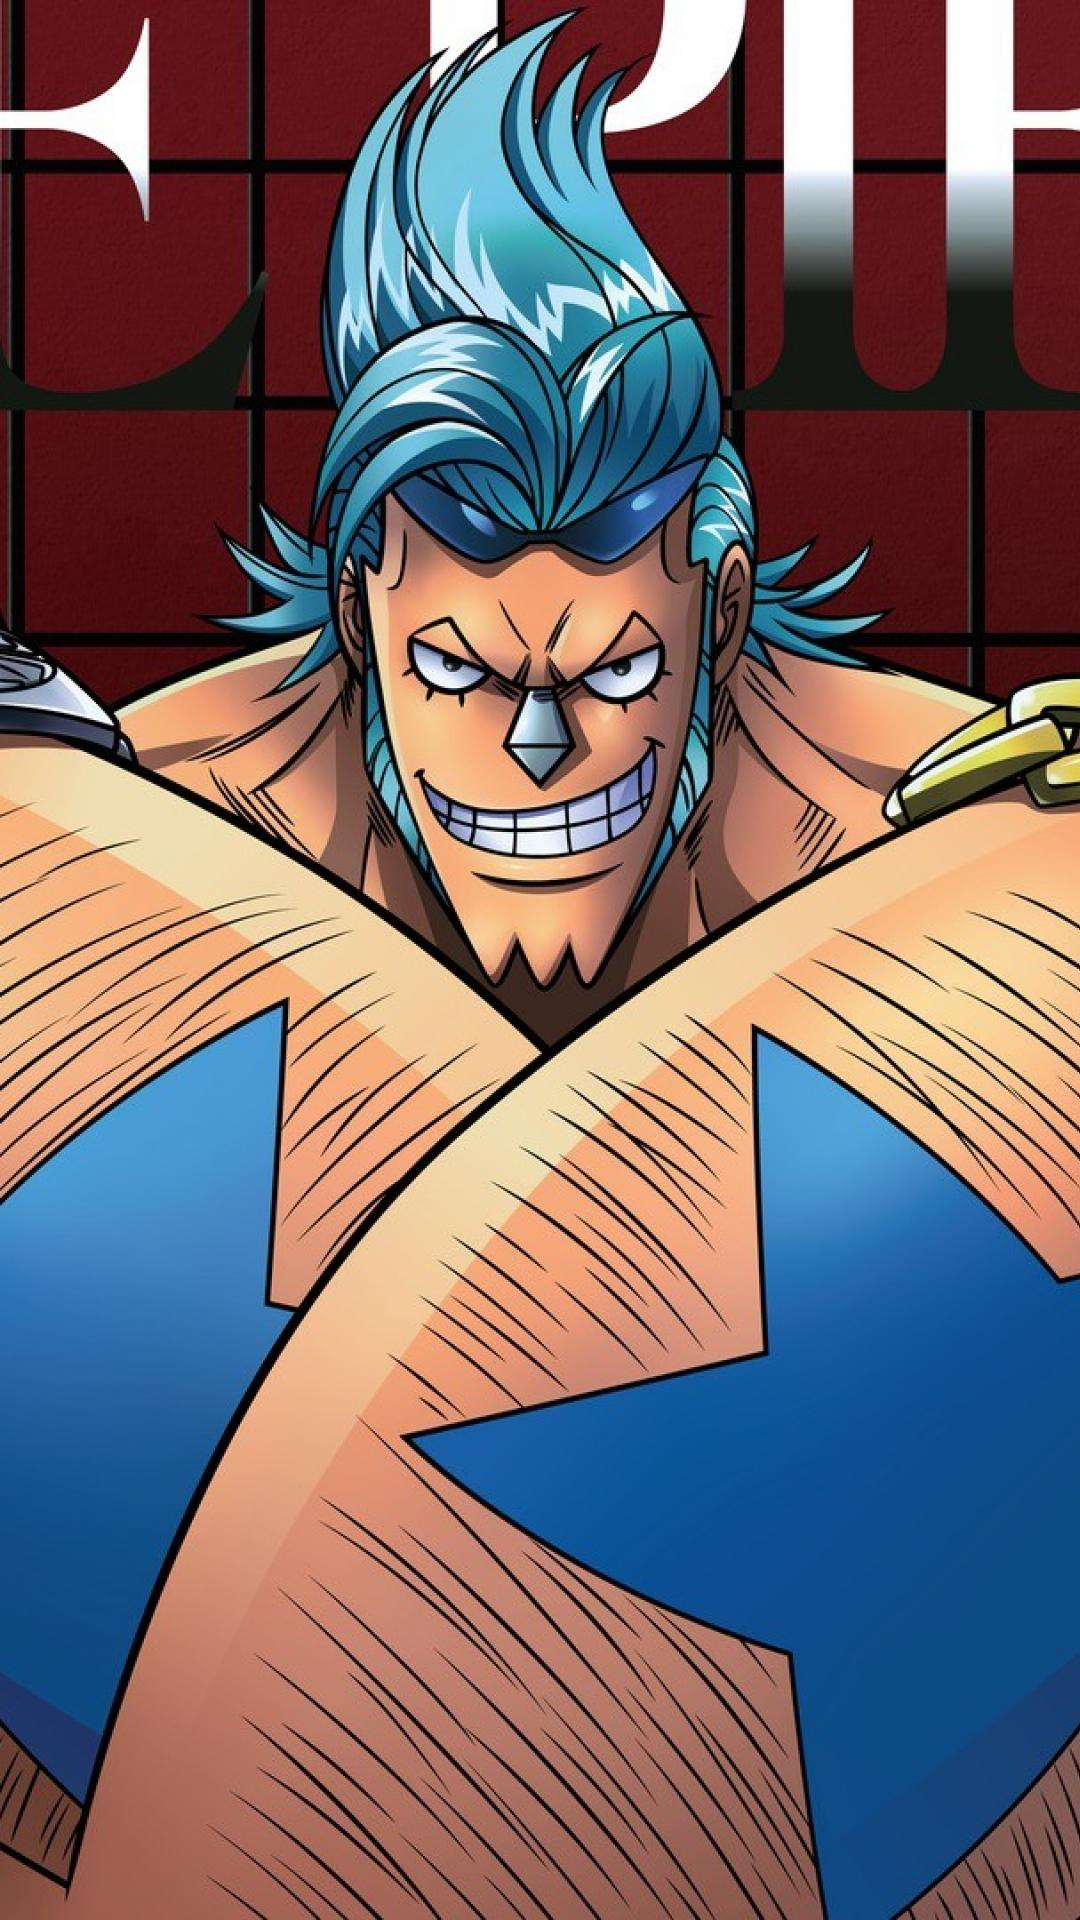 Franky One Piece Wallpapers Top Free Franky One Piece Backgrounds Wallpaperaccess